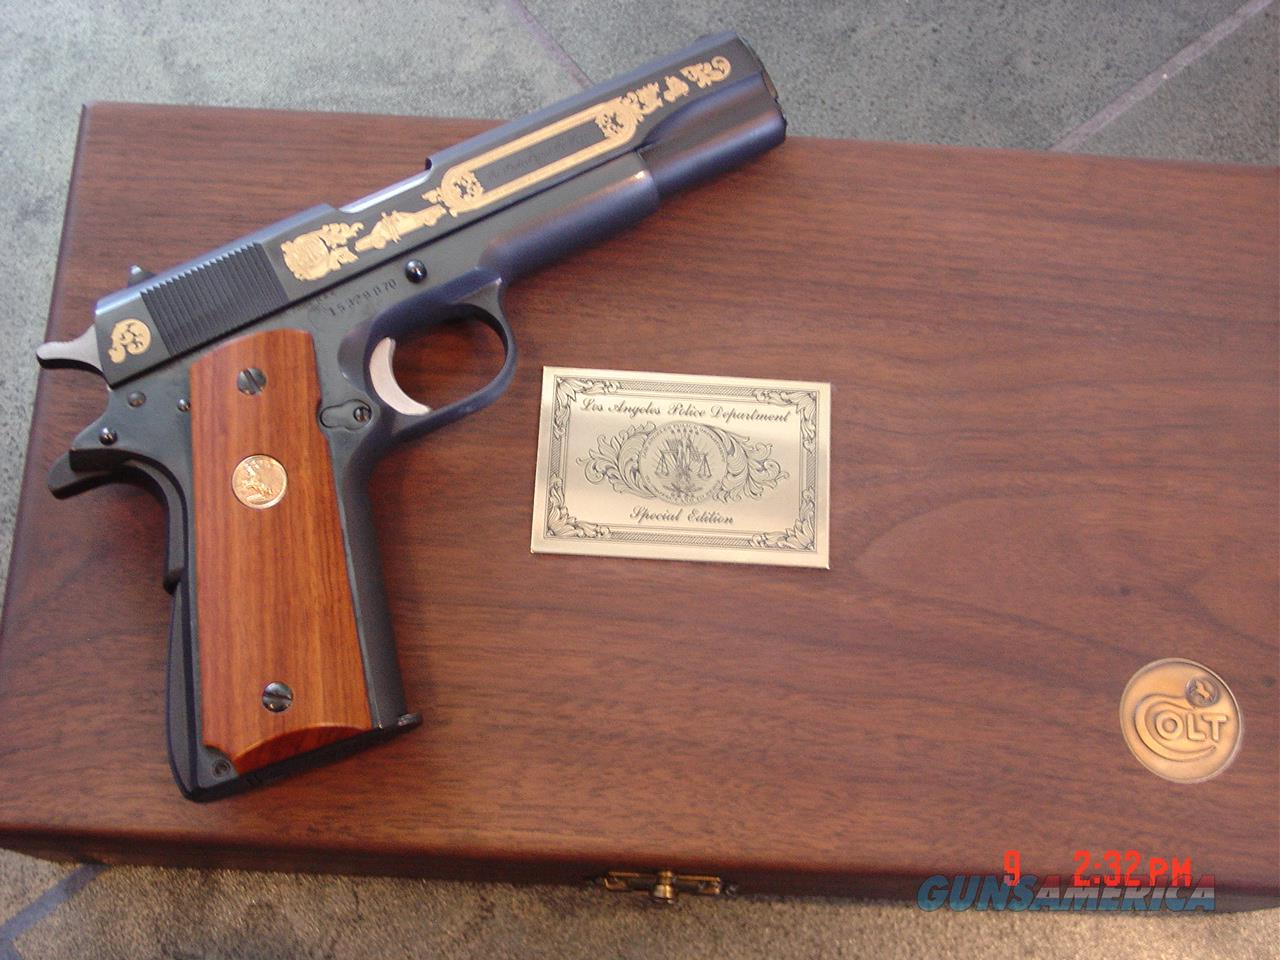 Colt 1911 Series 70 45acp,LAPD Special Edition,gold engraved on blue,rich custom wood grips,in fitted wood case,& brass LAPD plate on top,looks unfired--awesome  Guns > Pistols > Colt Commemorative Pistols